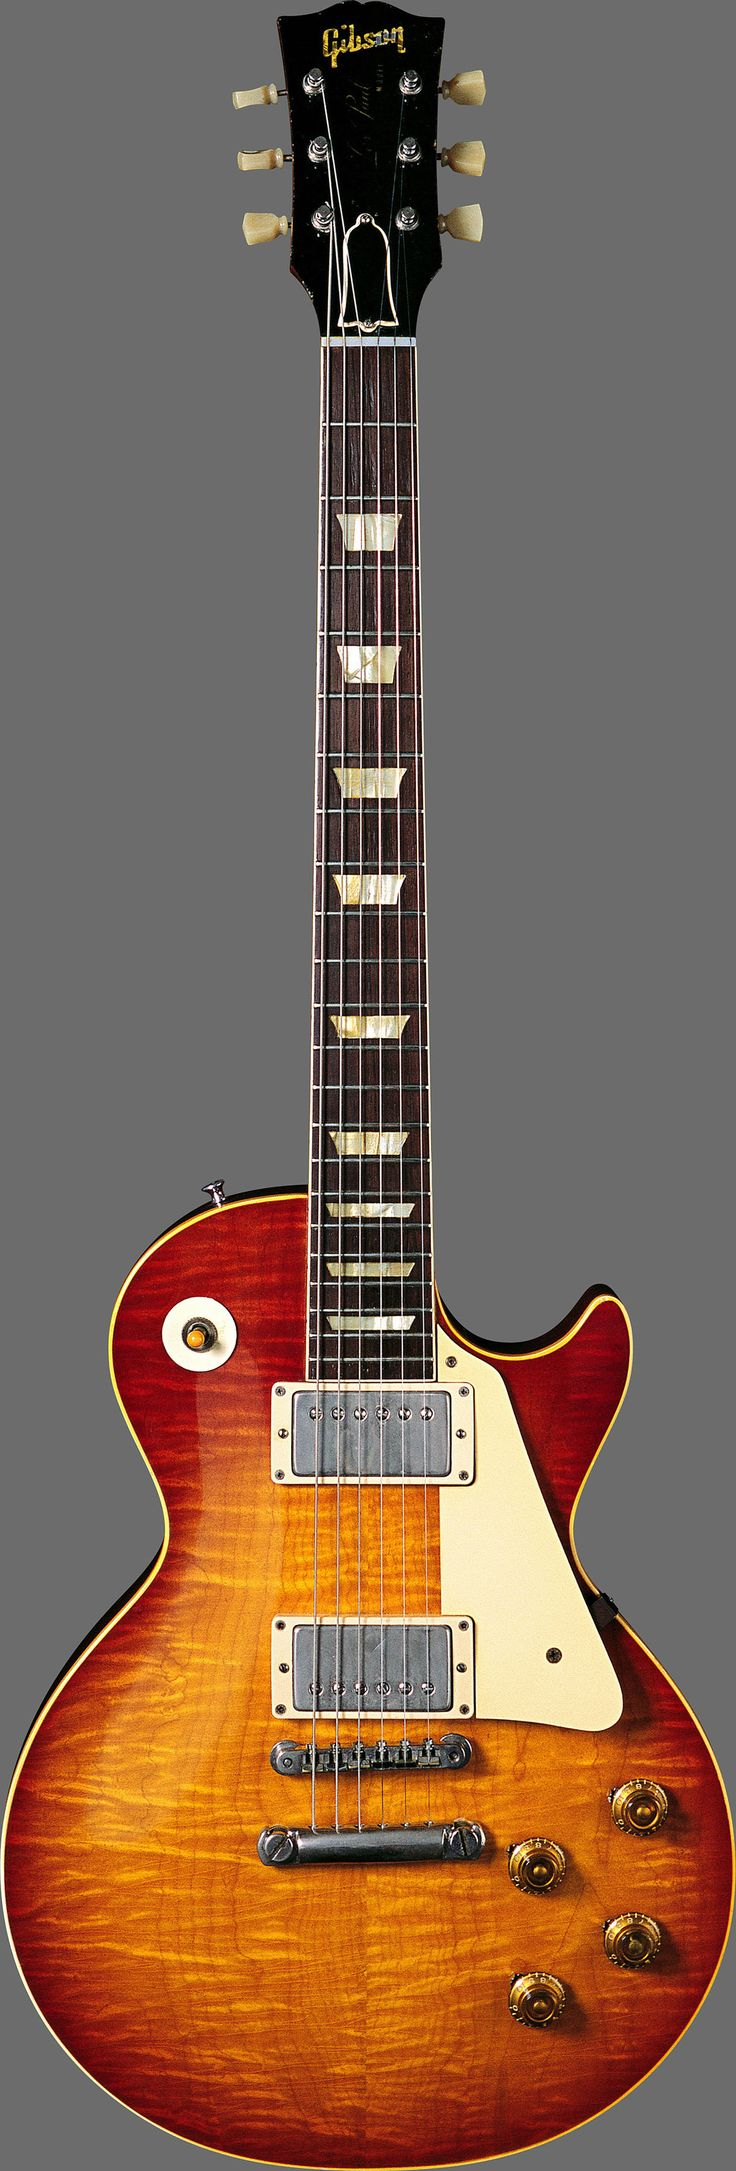 Gibson Les Paul Standard Cherry Sunburst